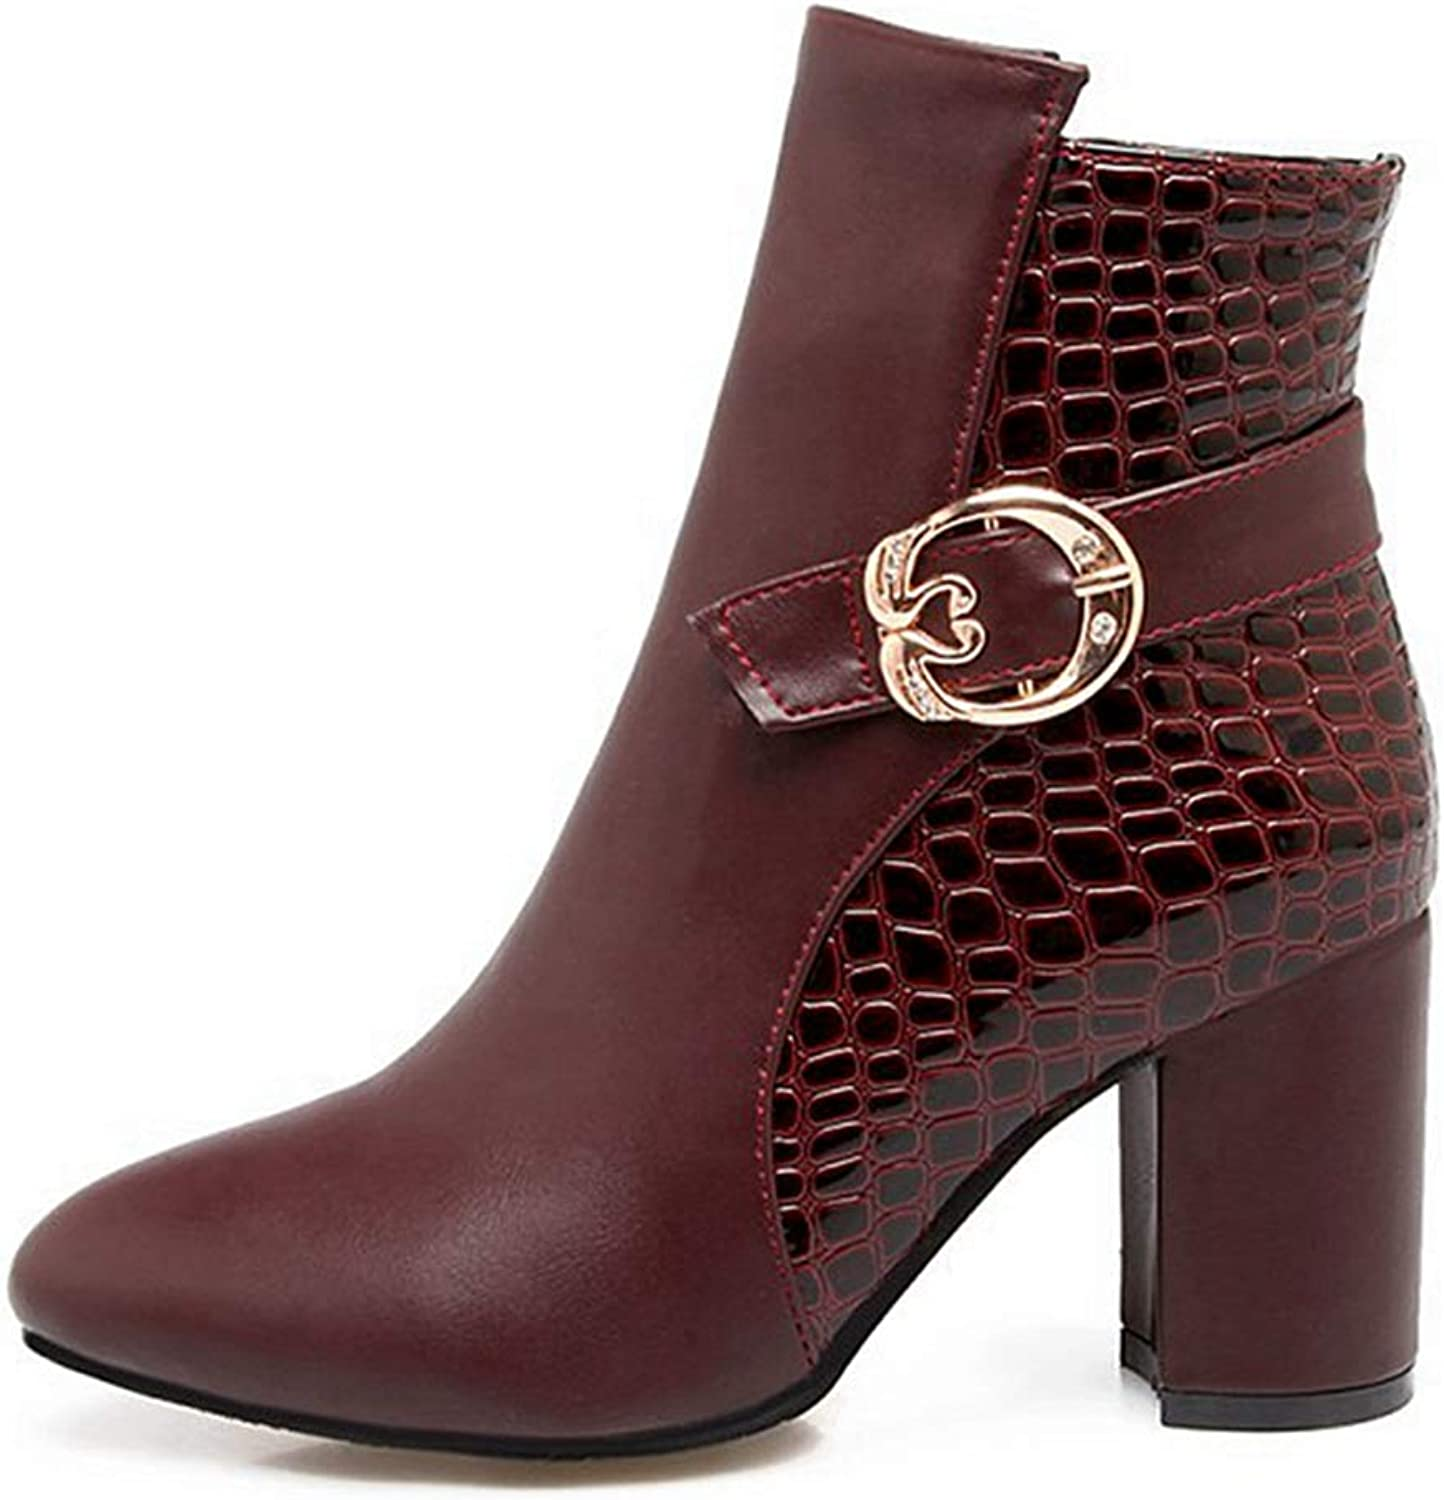 GIY Women's Buckle Heel Closed Toe Short Ankle Bootie Side Buckle Casual Comfortable Walking Martin Boots